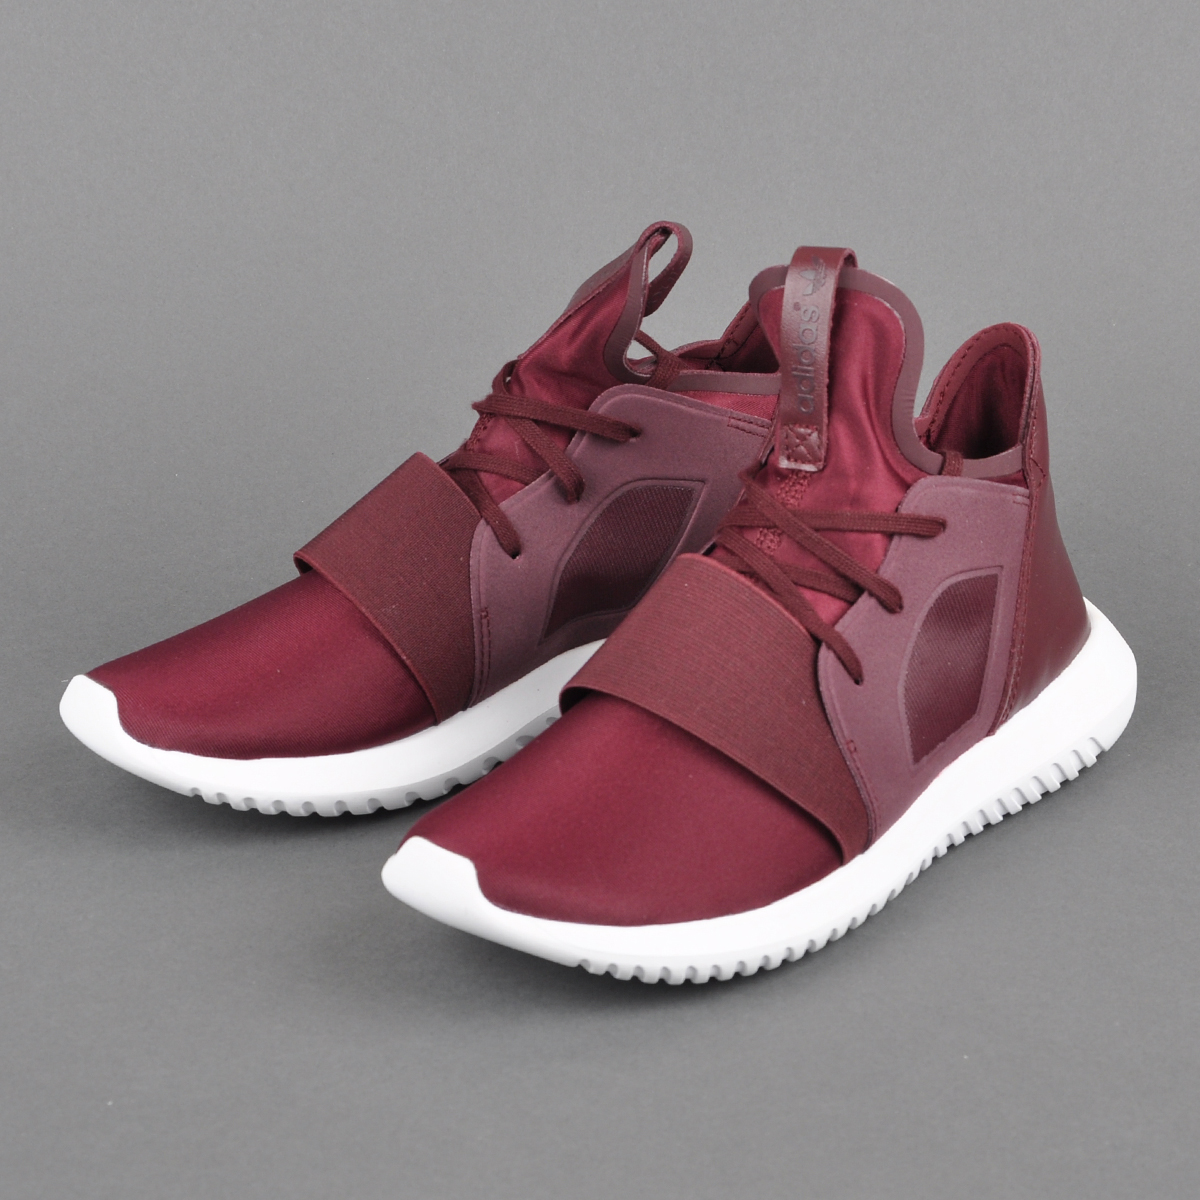 Adidas Tubular Defiant Red Womens